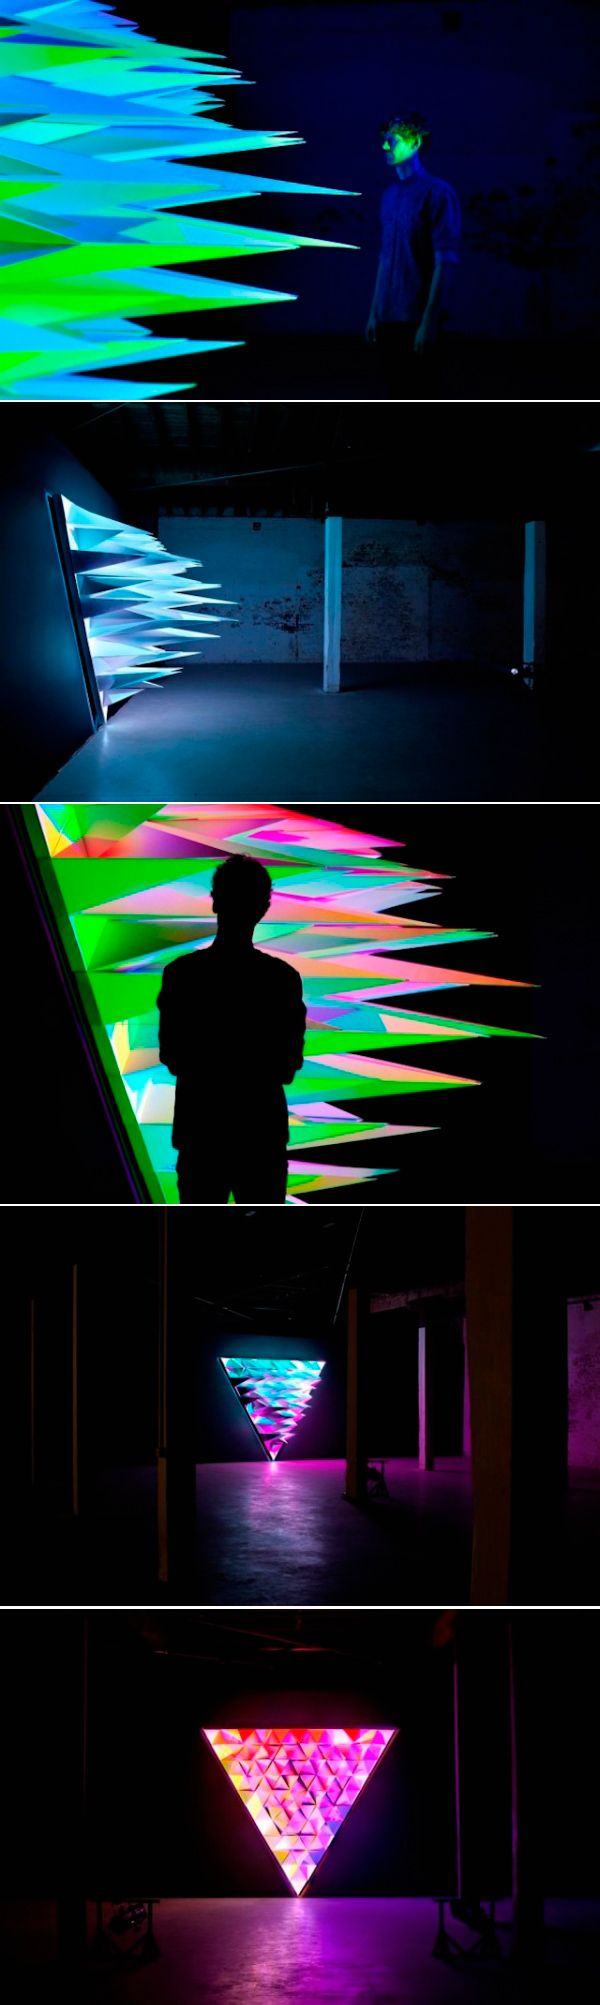 Primary Lighting Installation by Flynn Talbot // photos: John Madden